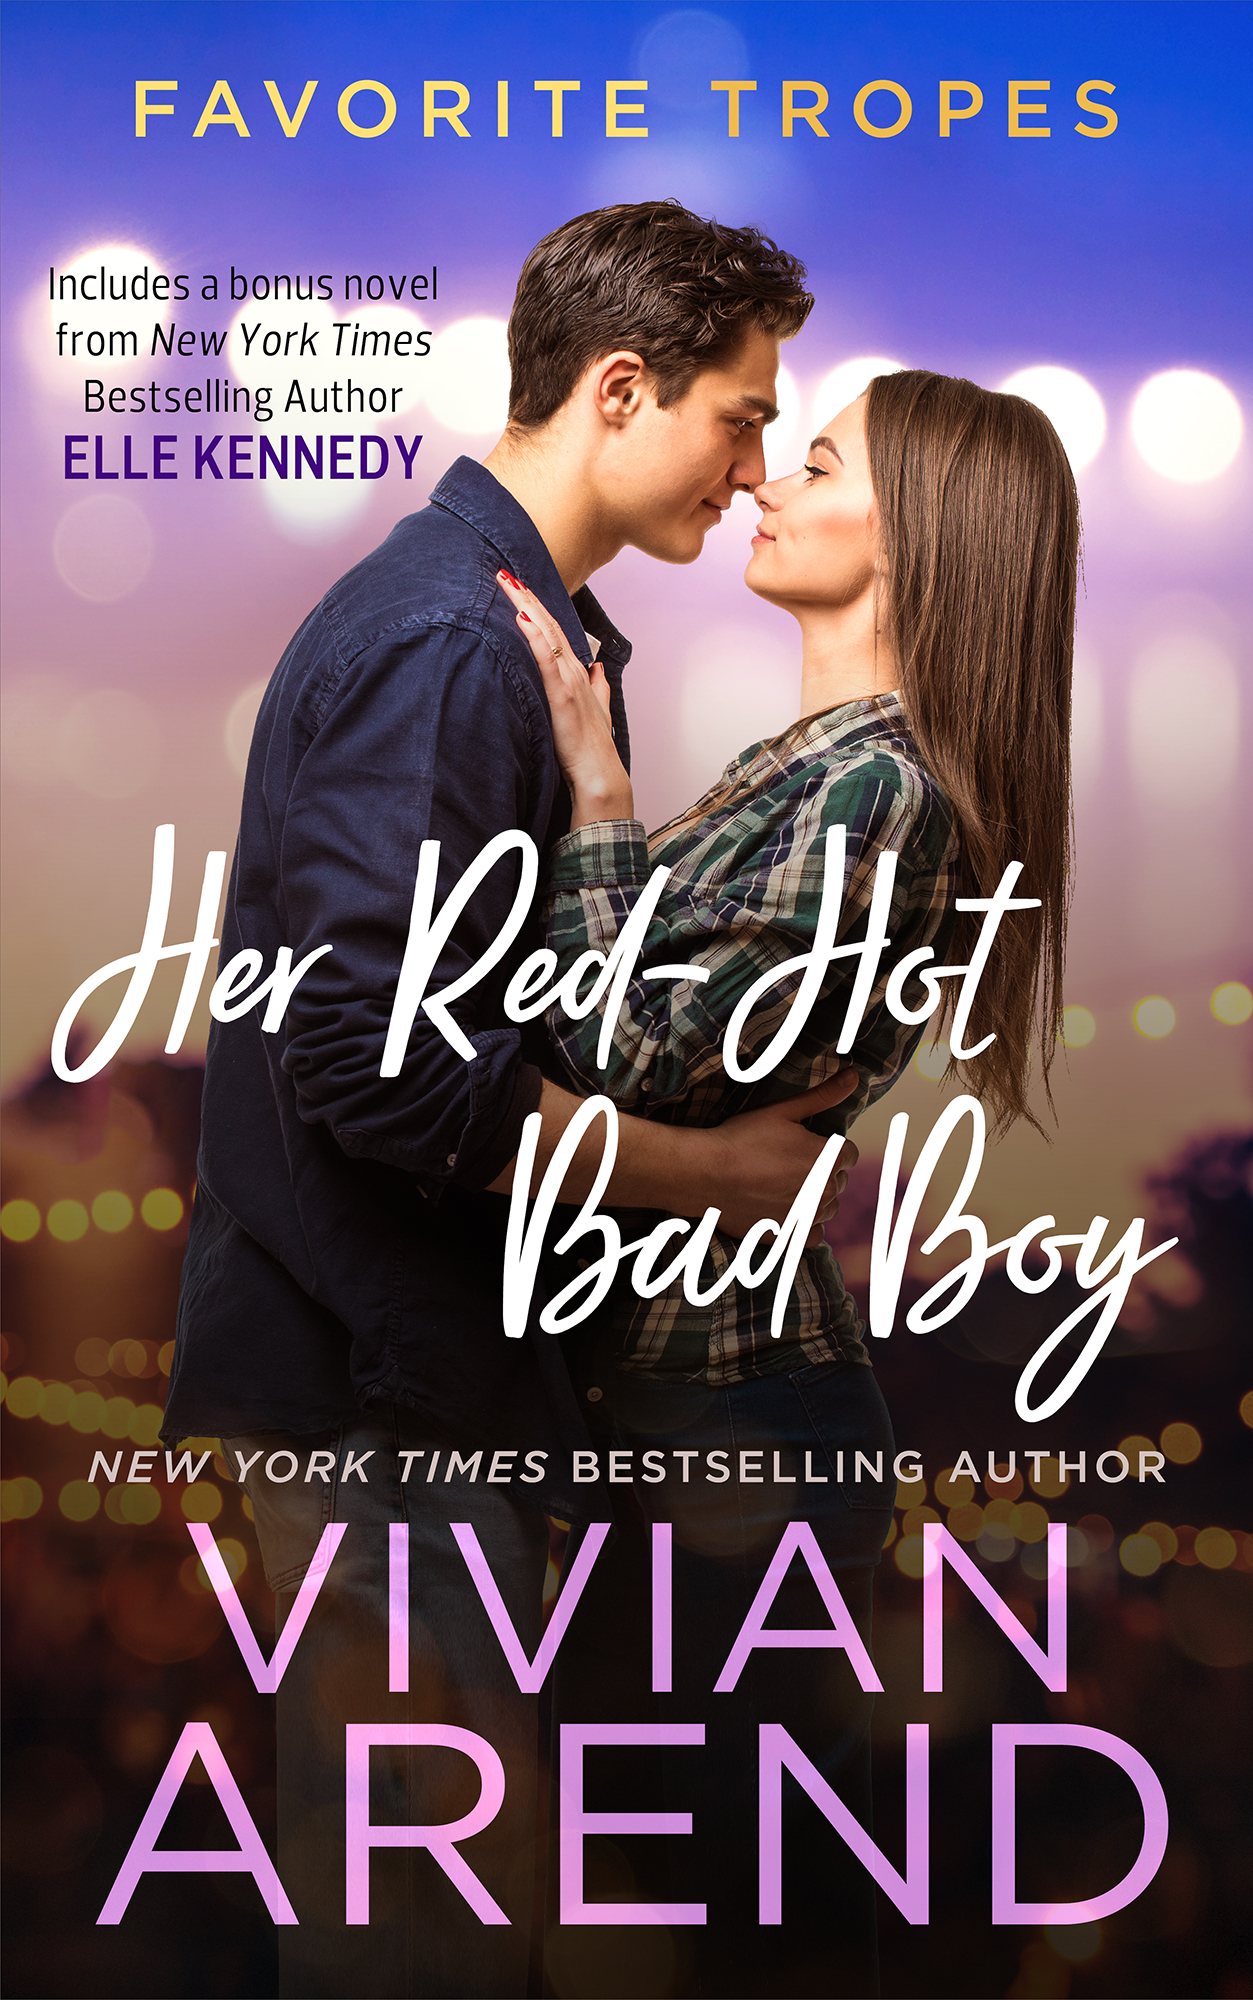 Her Red-Hot Bad Boy